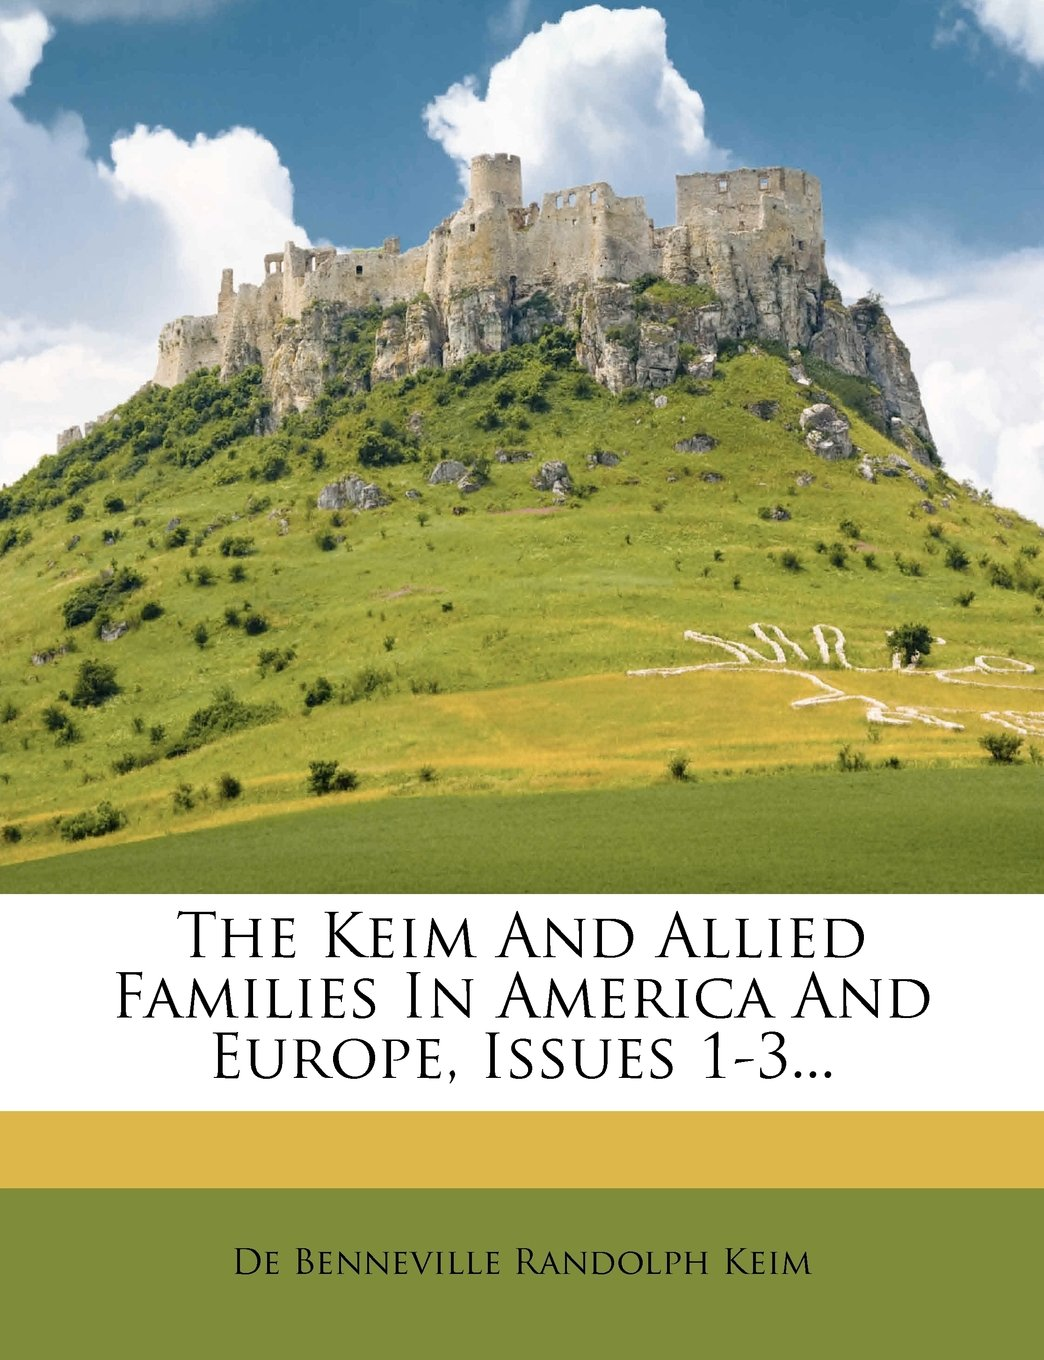 The Keim And Allied Families In America And Europe, Issues 1-3... pdf